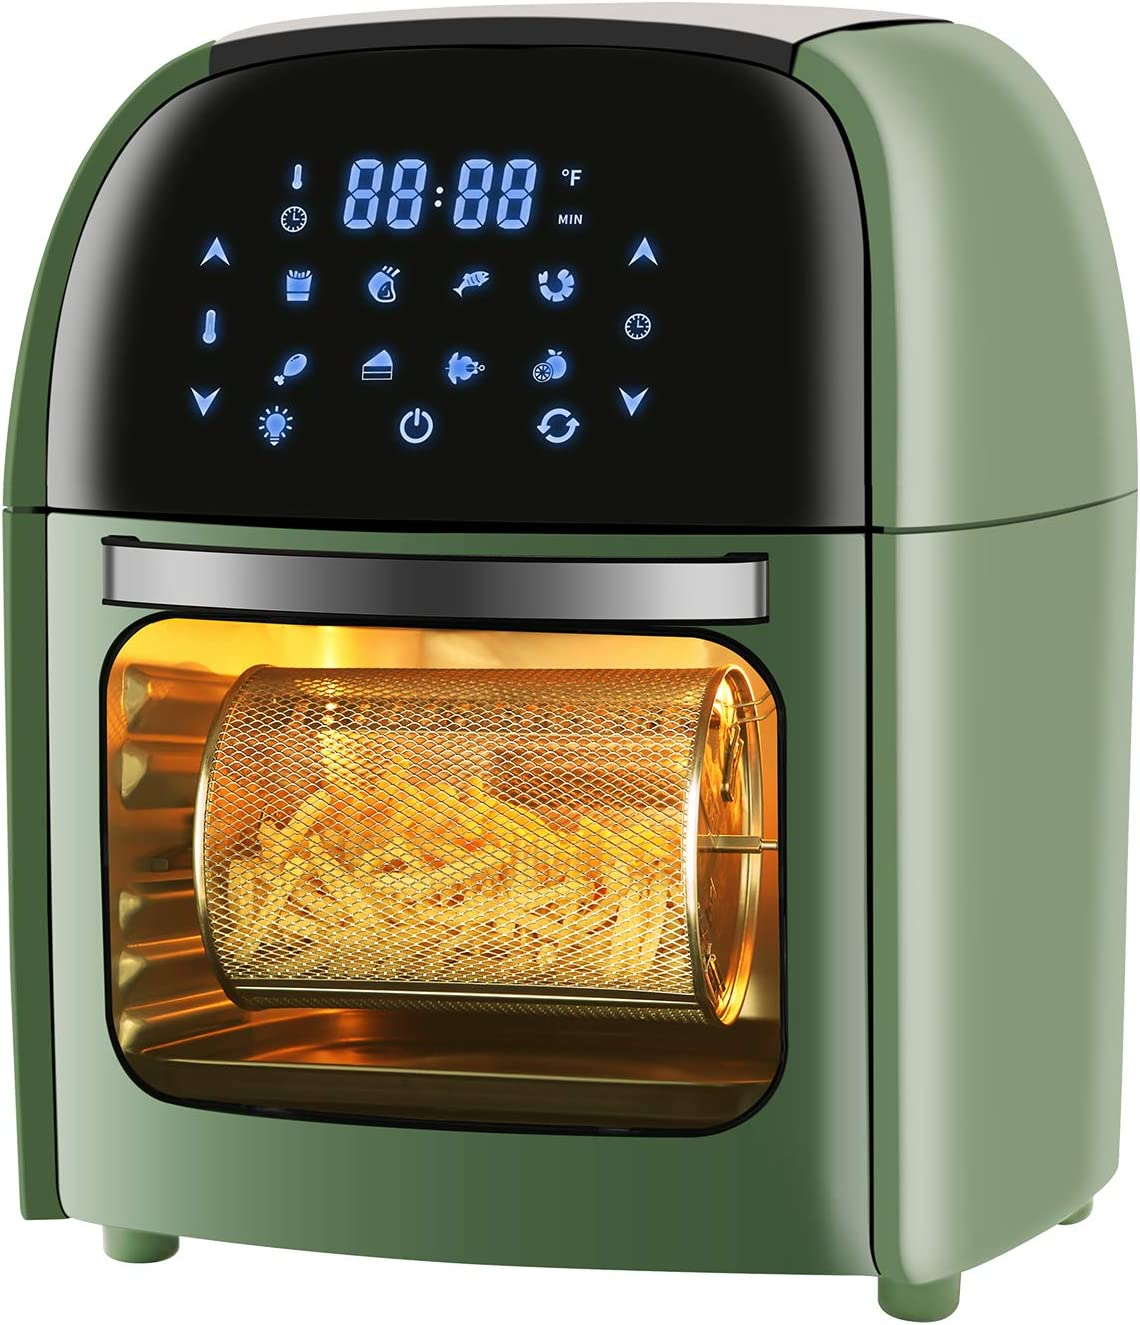 R.W.FLAME Air Fryer 10.5QT with Rotisserie, Dehydrator, 8-in-1 Presets,LED Digital Display, Time& Temperature Control, ETL GS CE CB Certificated, Green,1700W